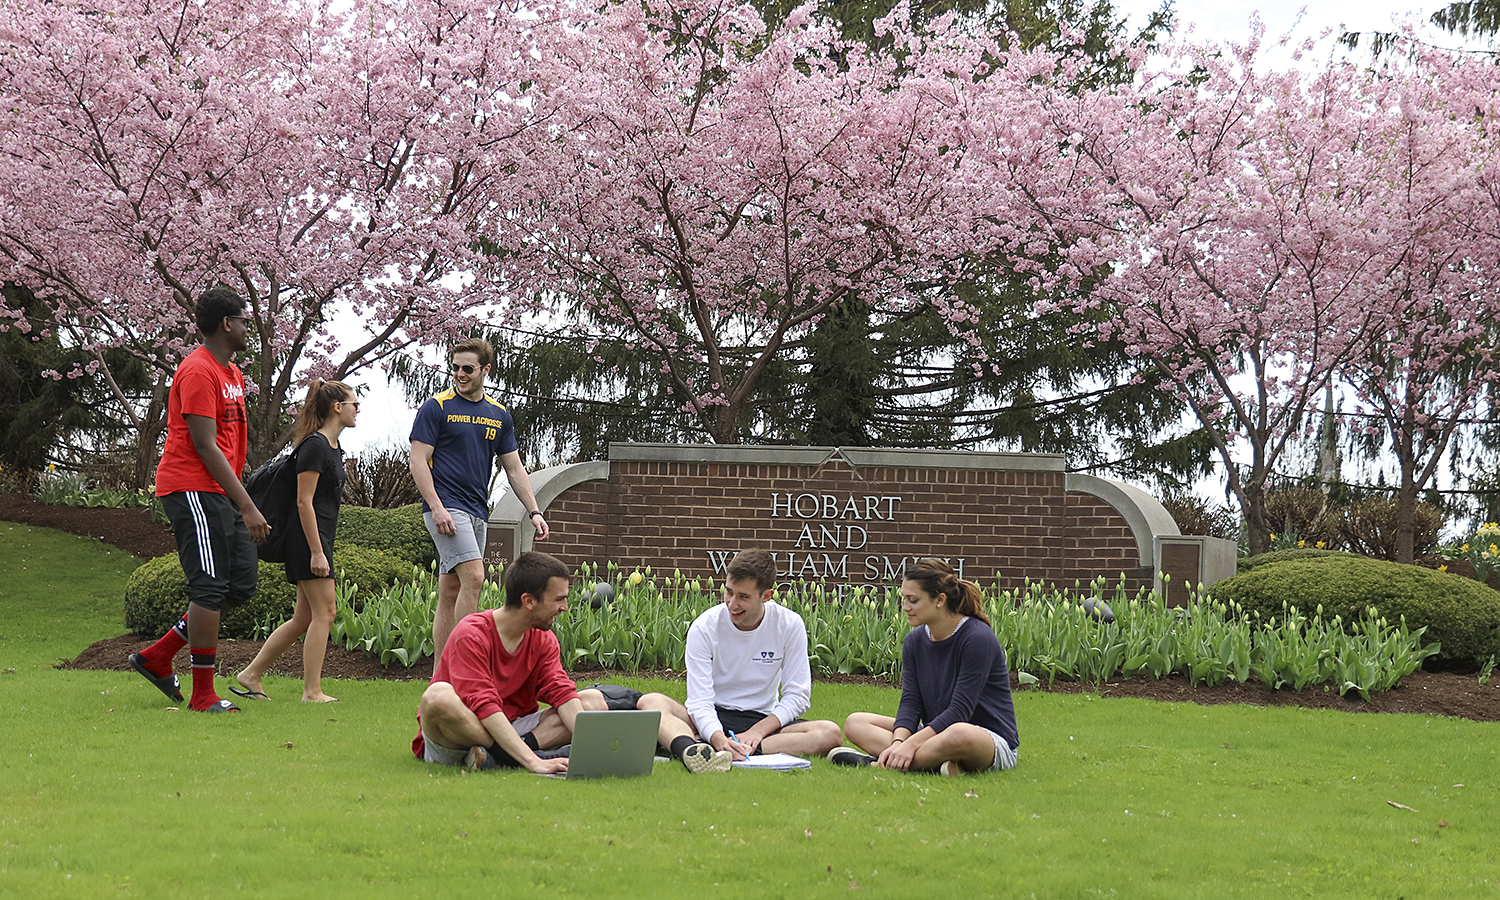 Trees are in full bloom on campus.